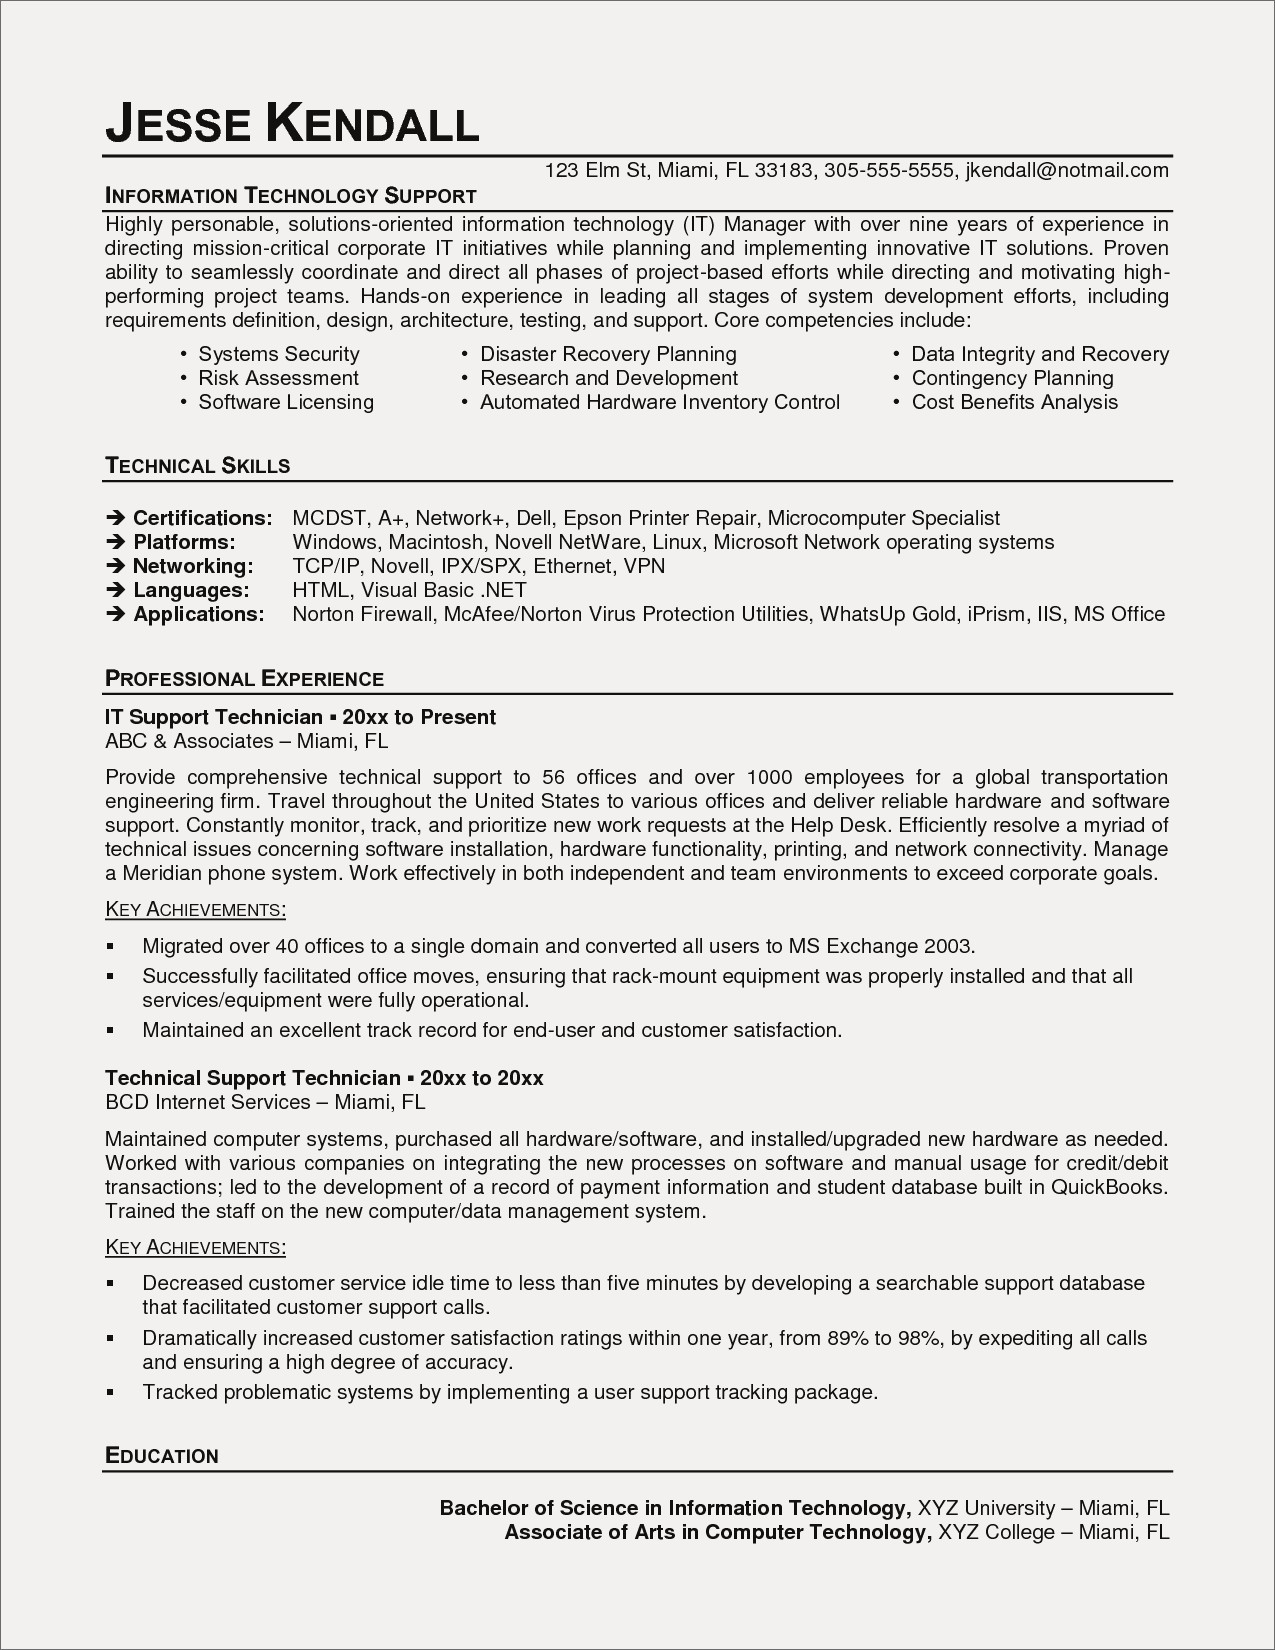 mechanic resume template Collection-Technician Resume Examples New Auto Mechanic Resume American Resume Sample New Student Resume 0d 20-r